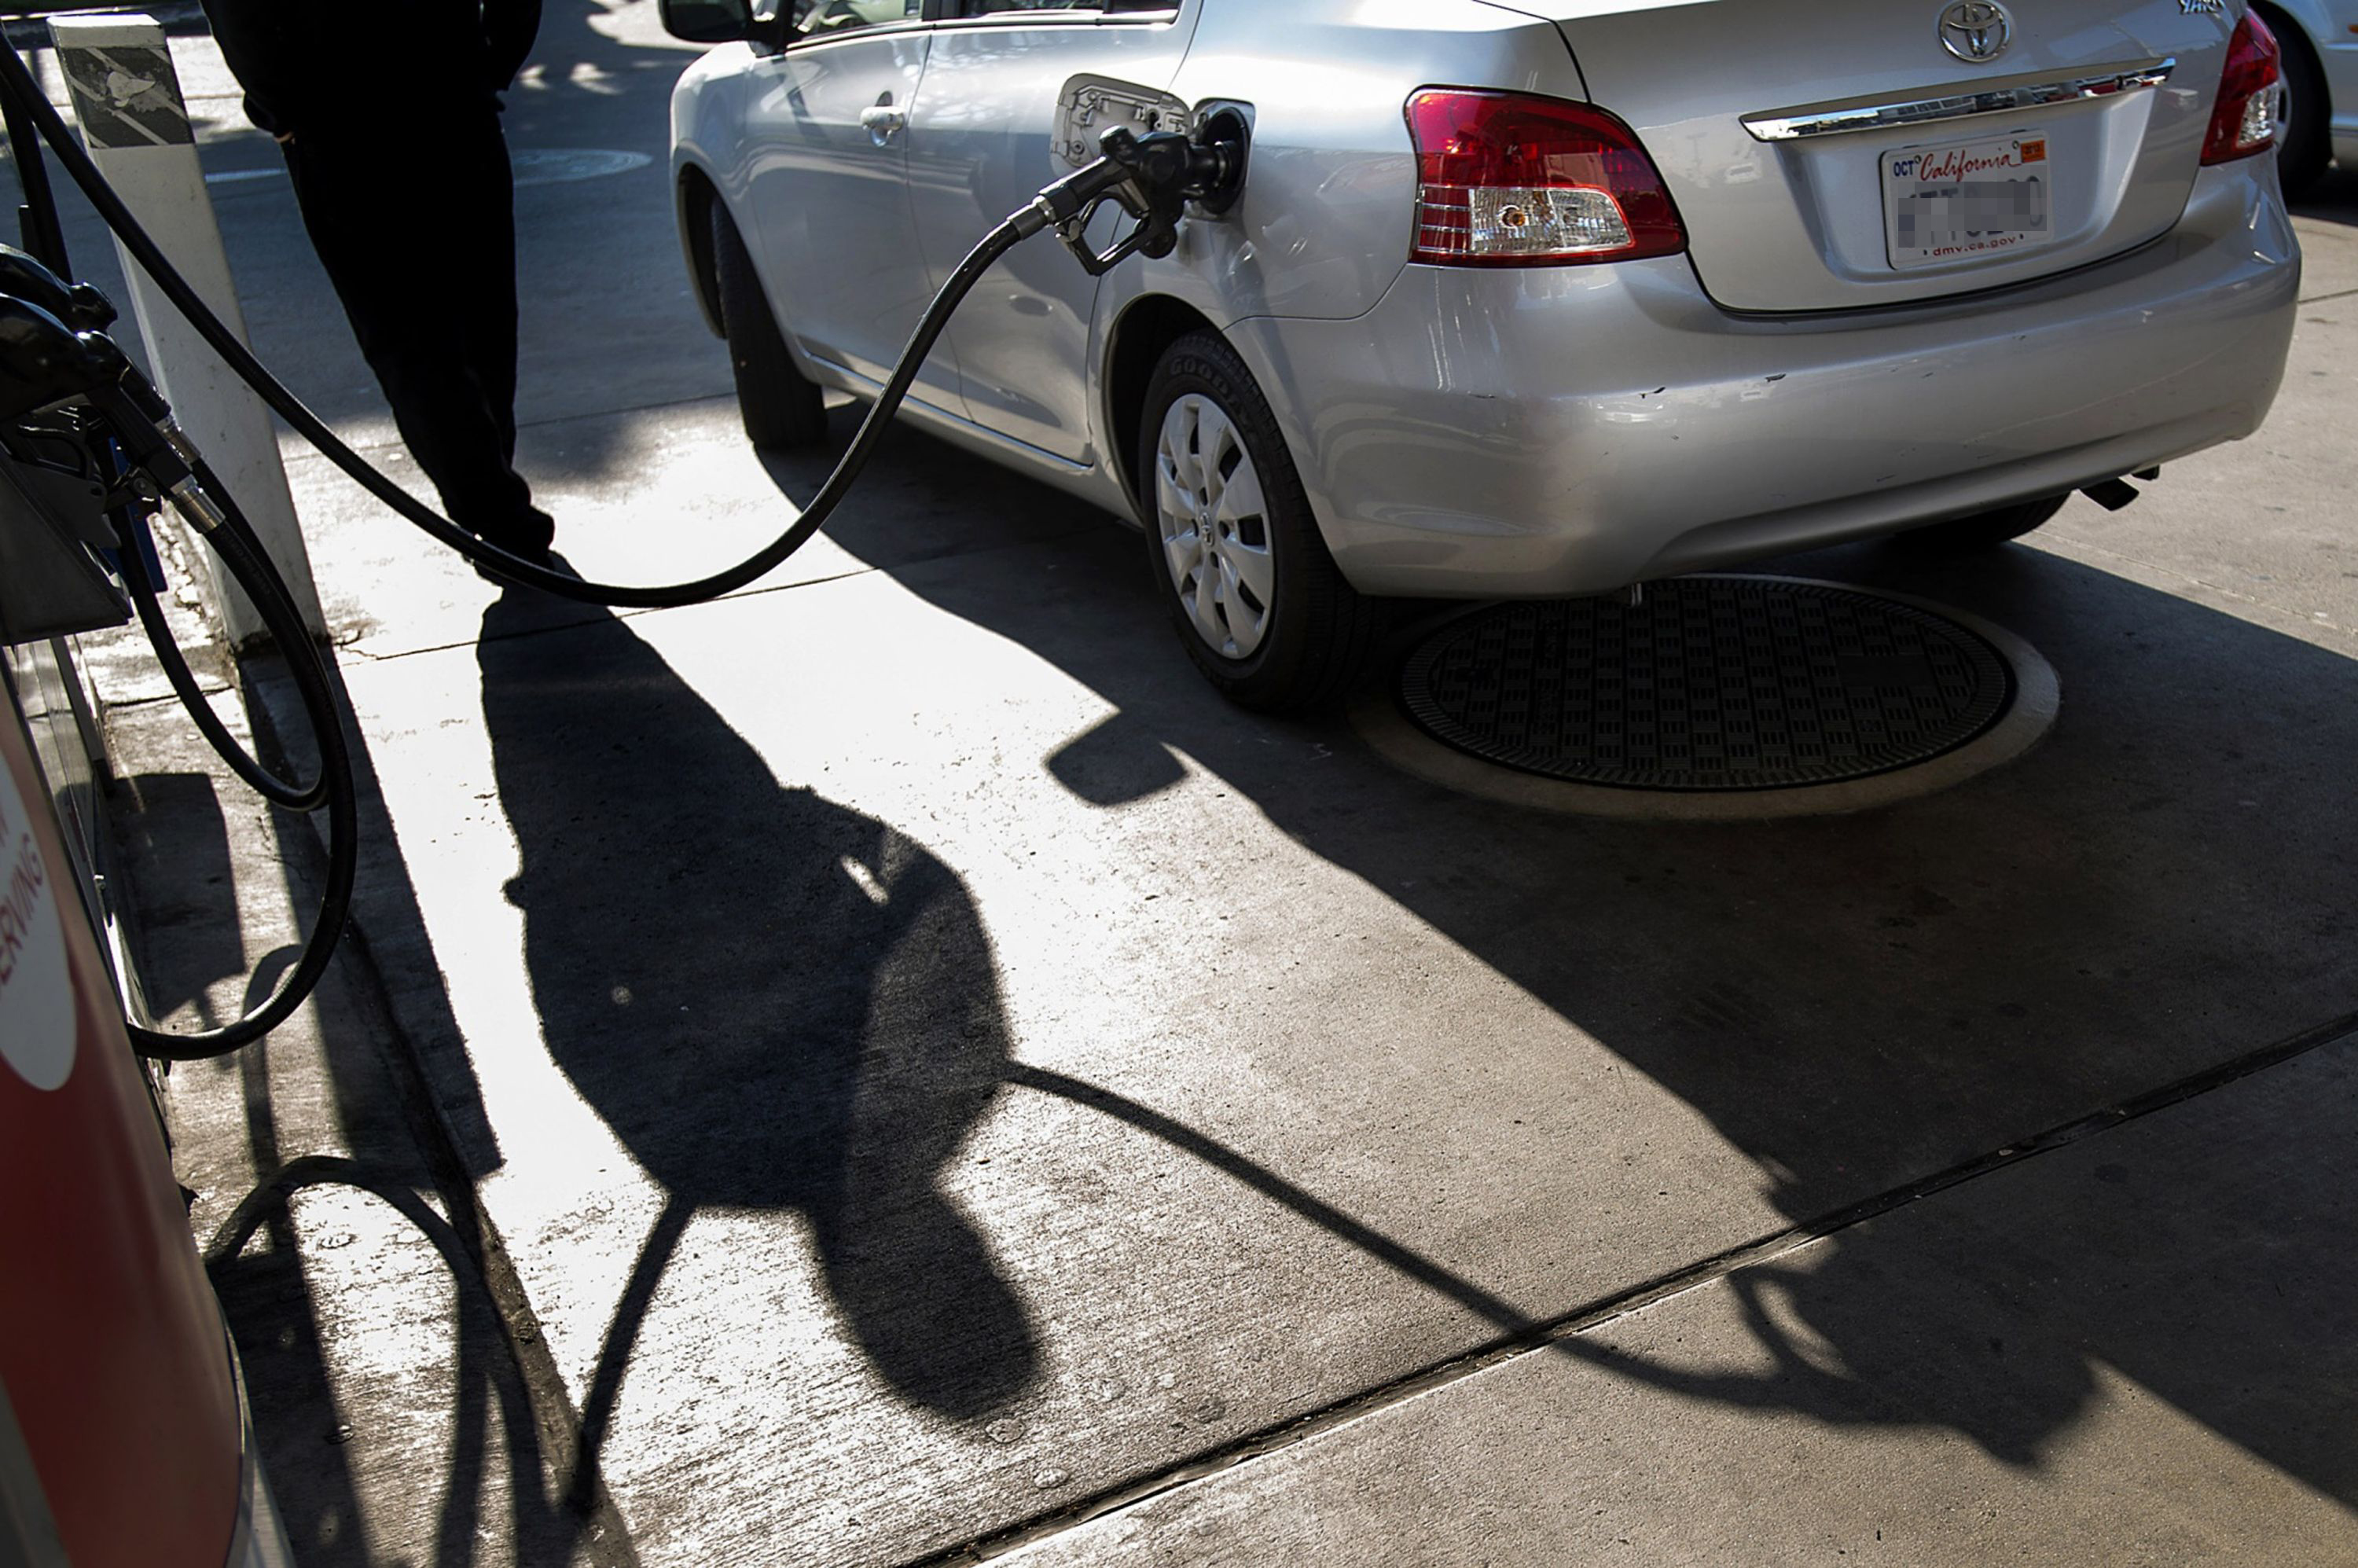 California to phase out gas-powered cars by 2035